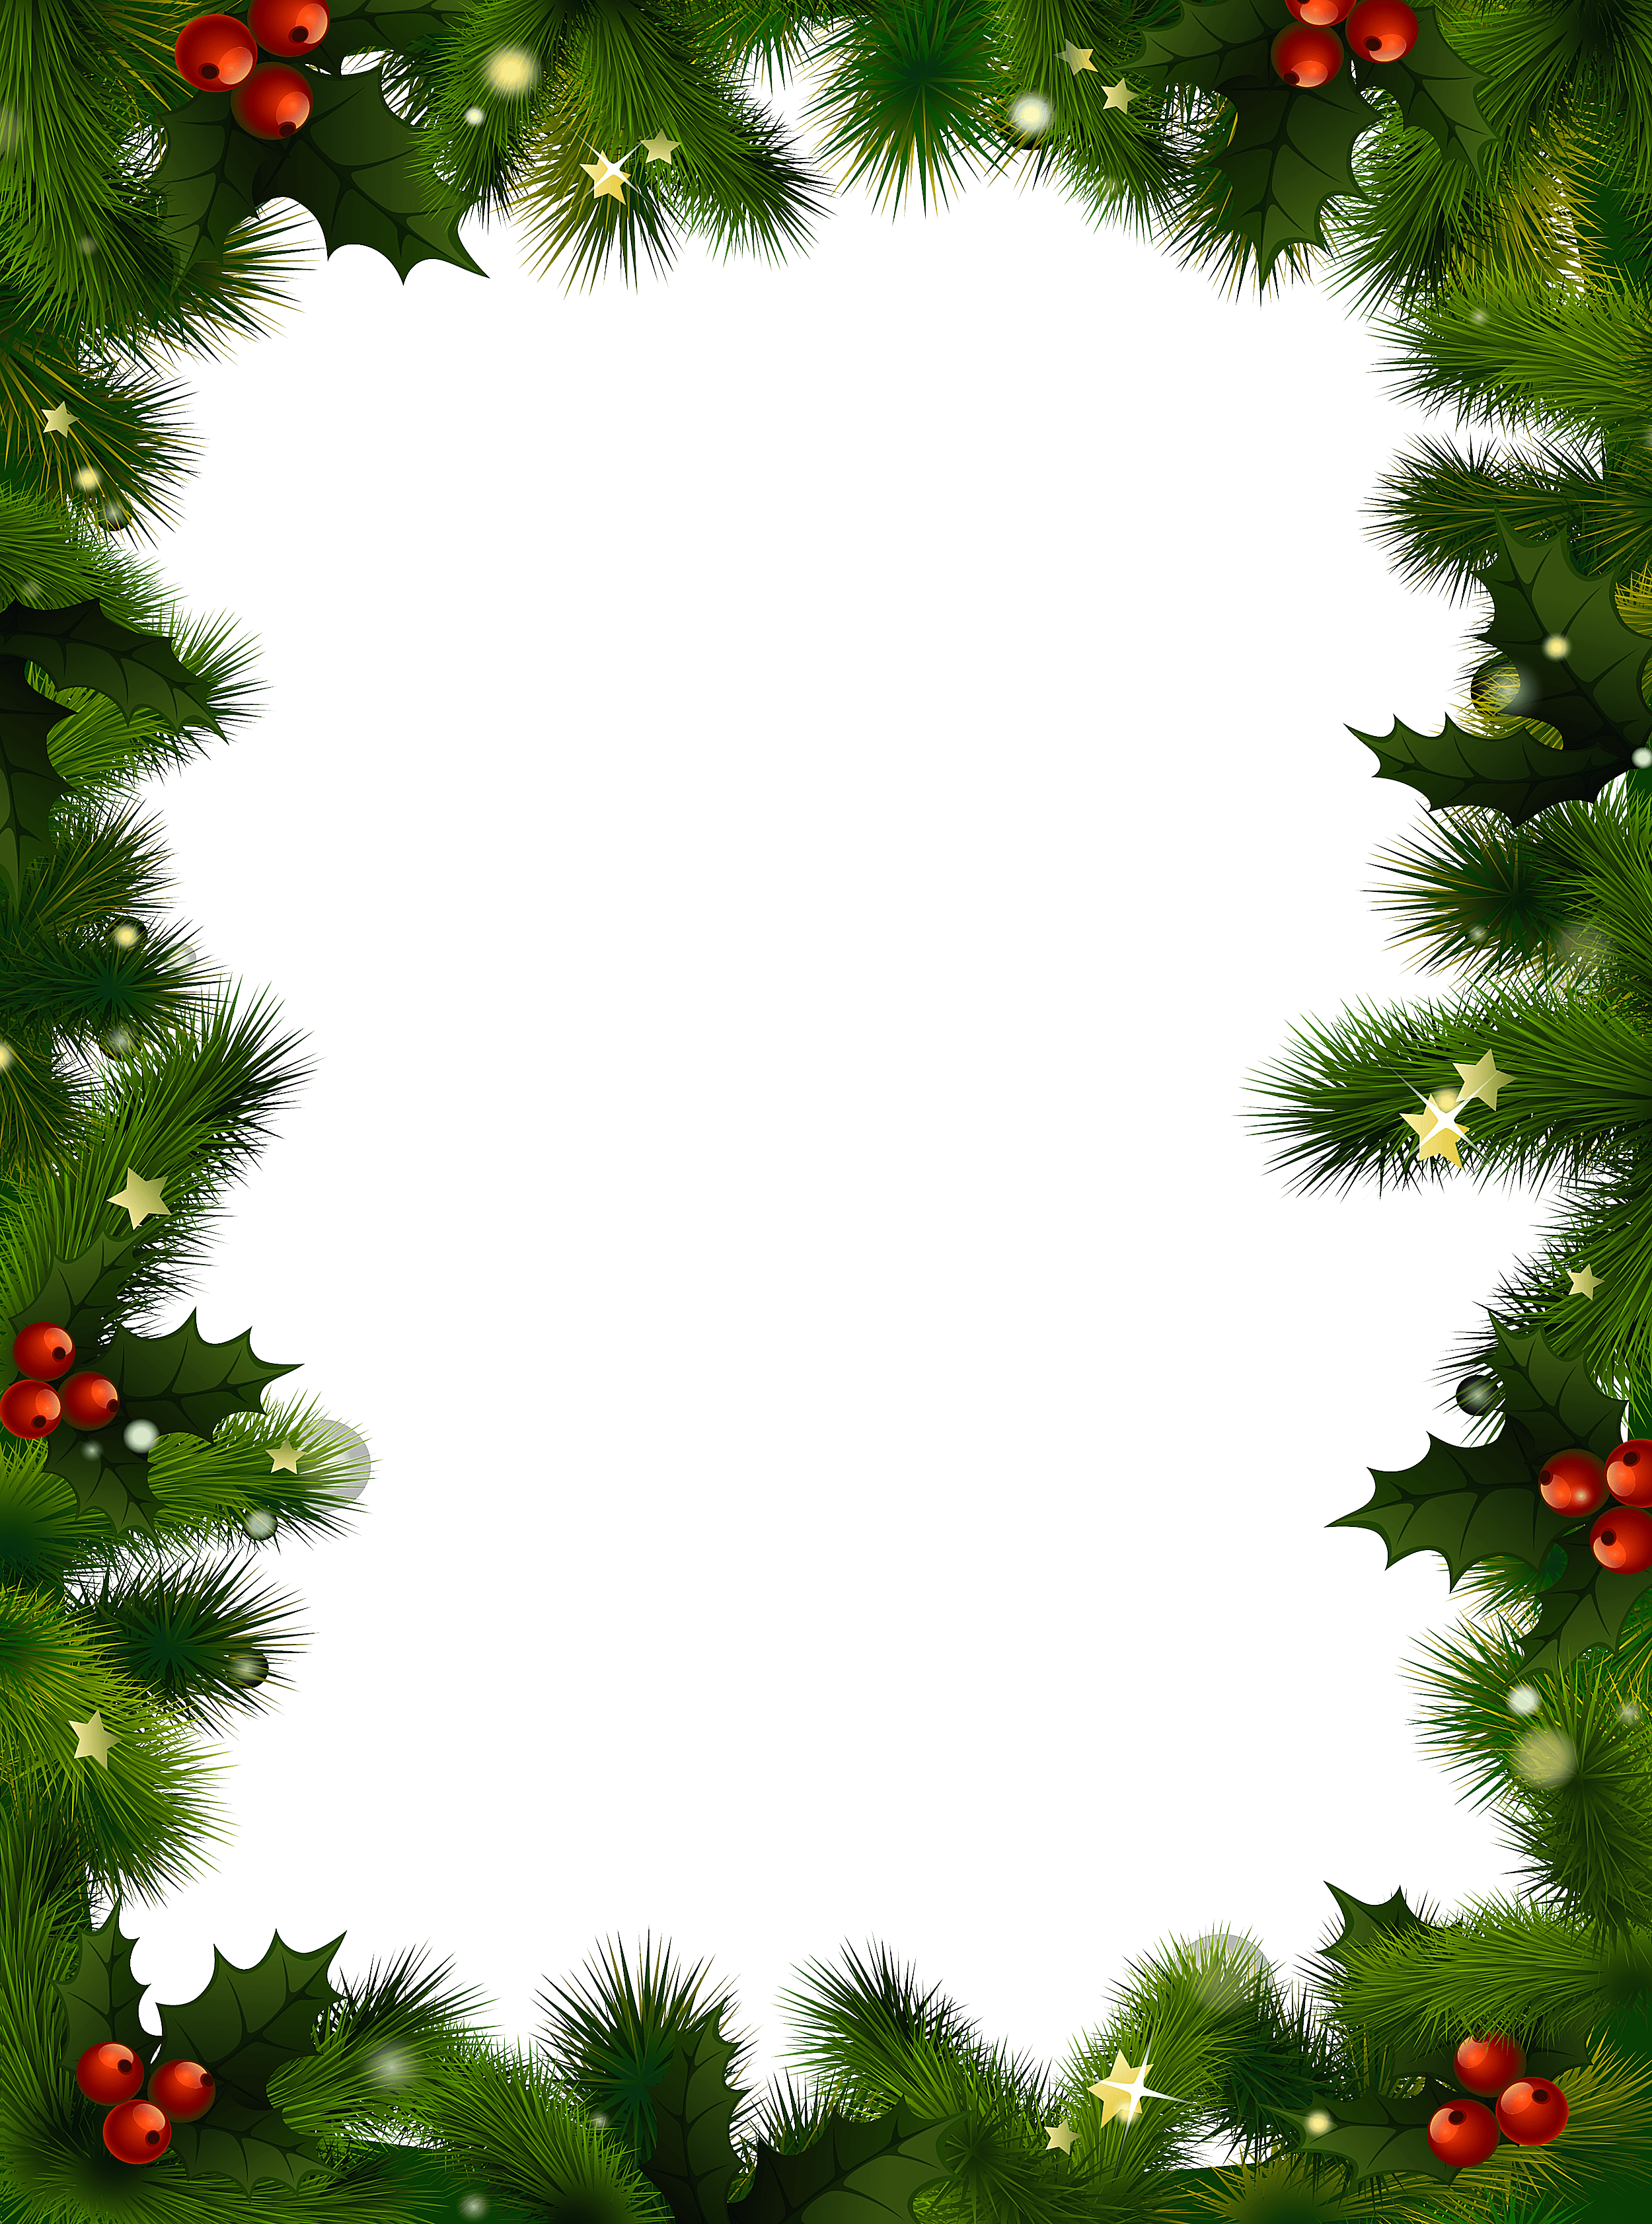 Christmas frame png. Acur lunamedia co